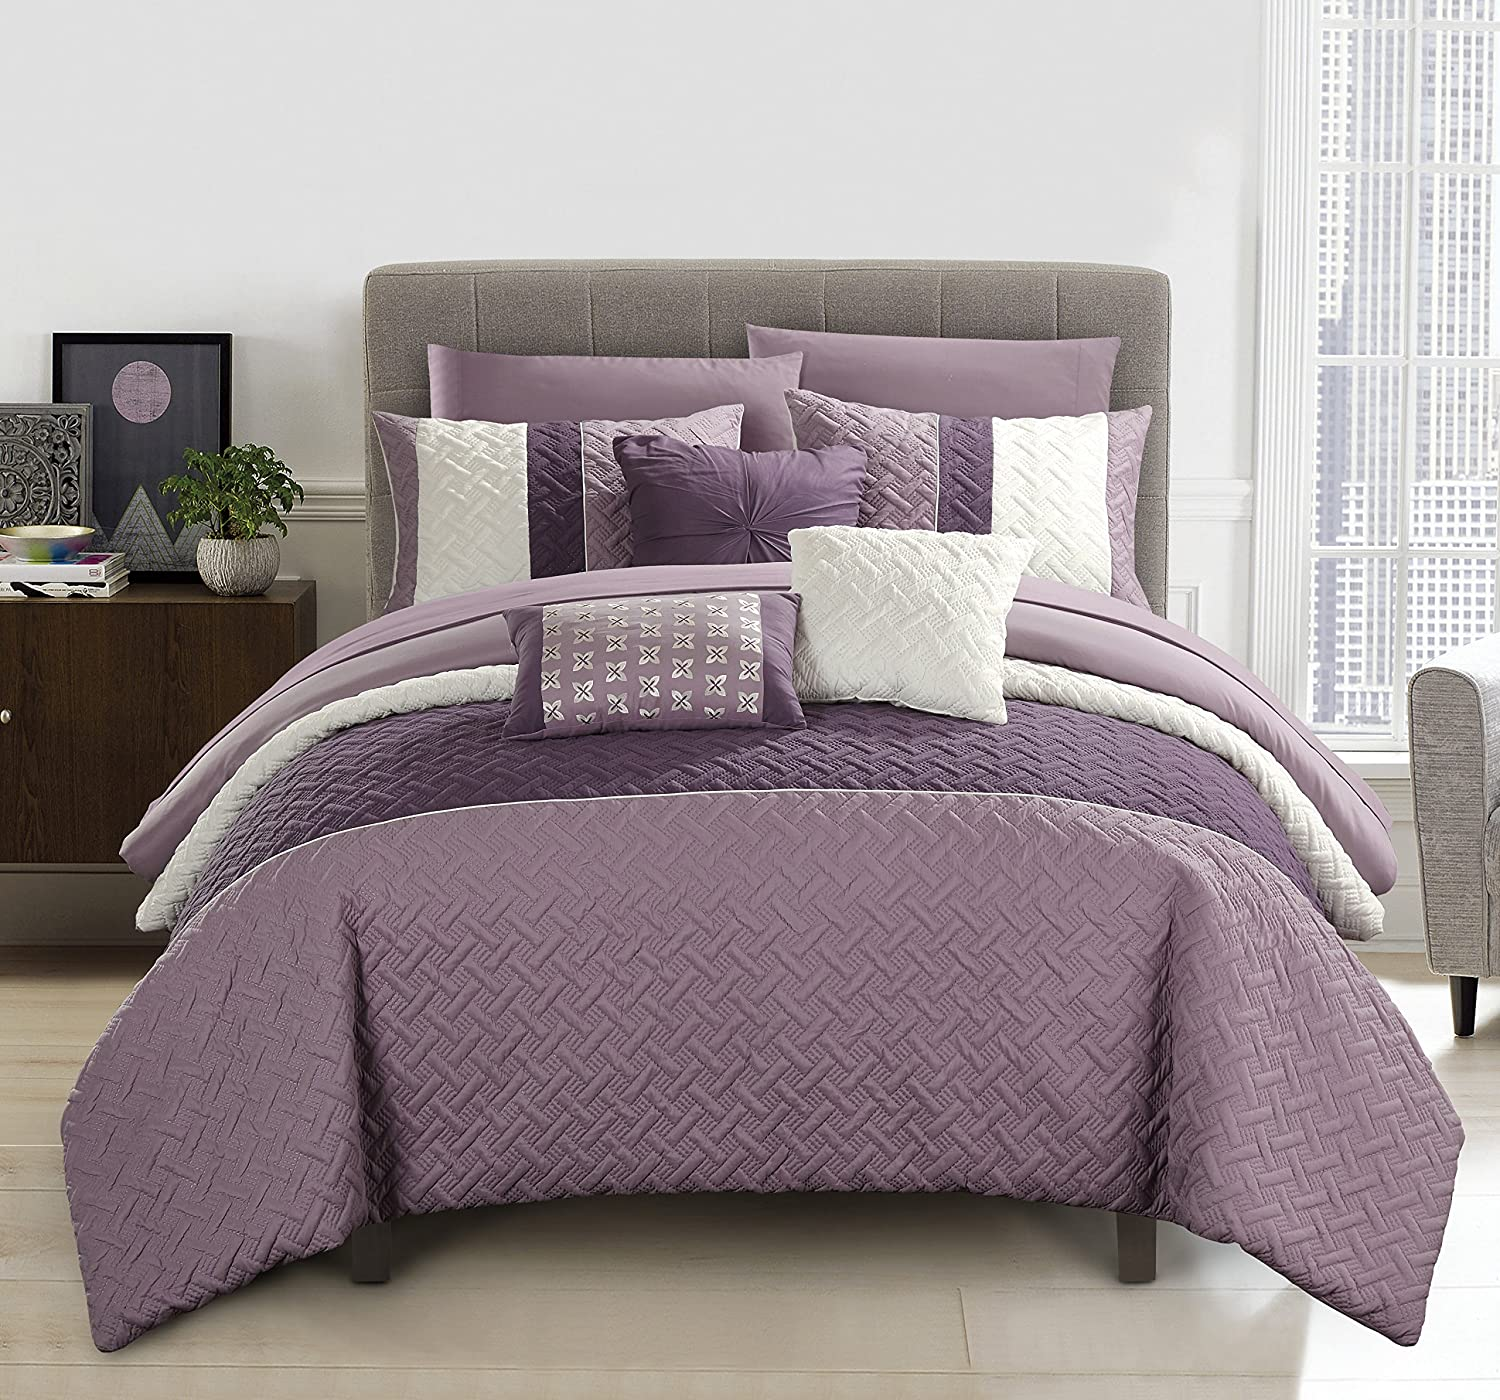 Chic Home Osnat 10 Piece Comforter Set Color Block Quilted Embroidered Design Bed in a Bag Bedding – Sheets Decorative Pillows Shams Included Queen Plum